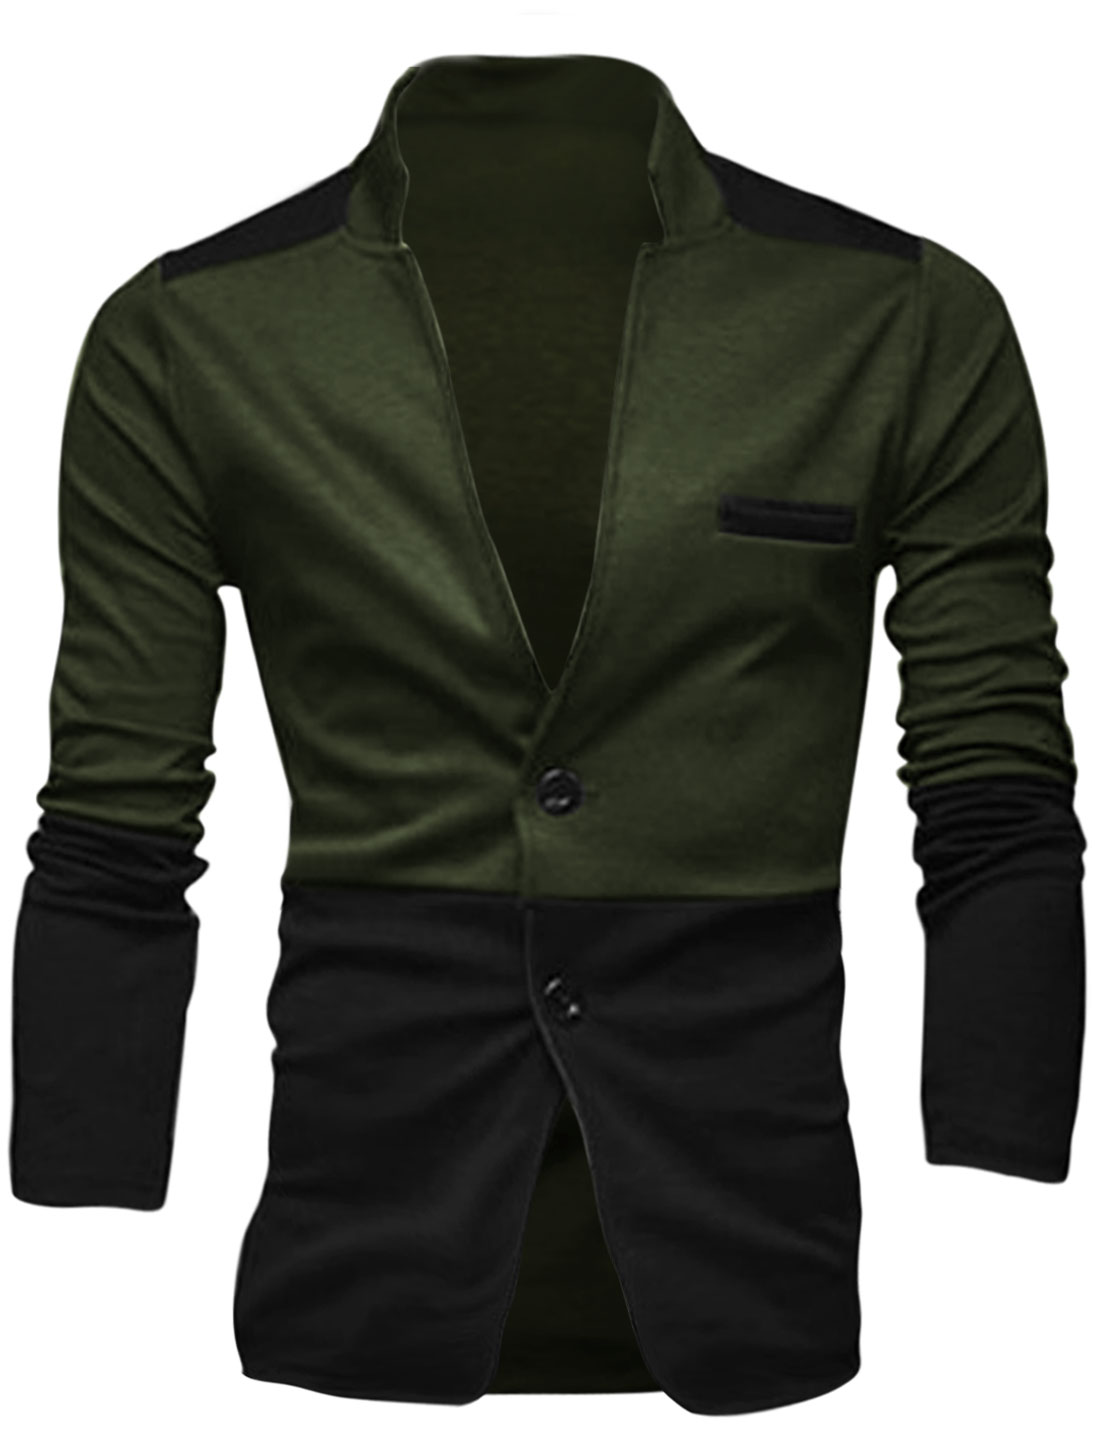 Men Notched Lapel Two Buttons Contrast Color Basic Jacket Black Army Green M